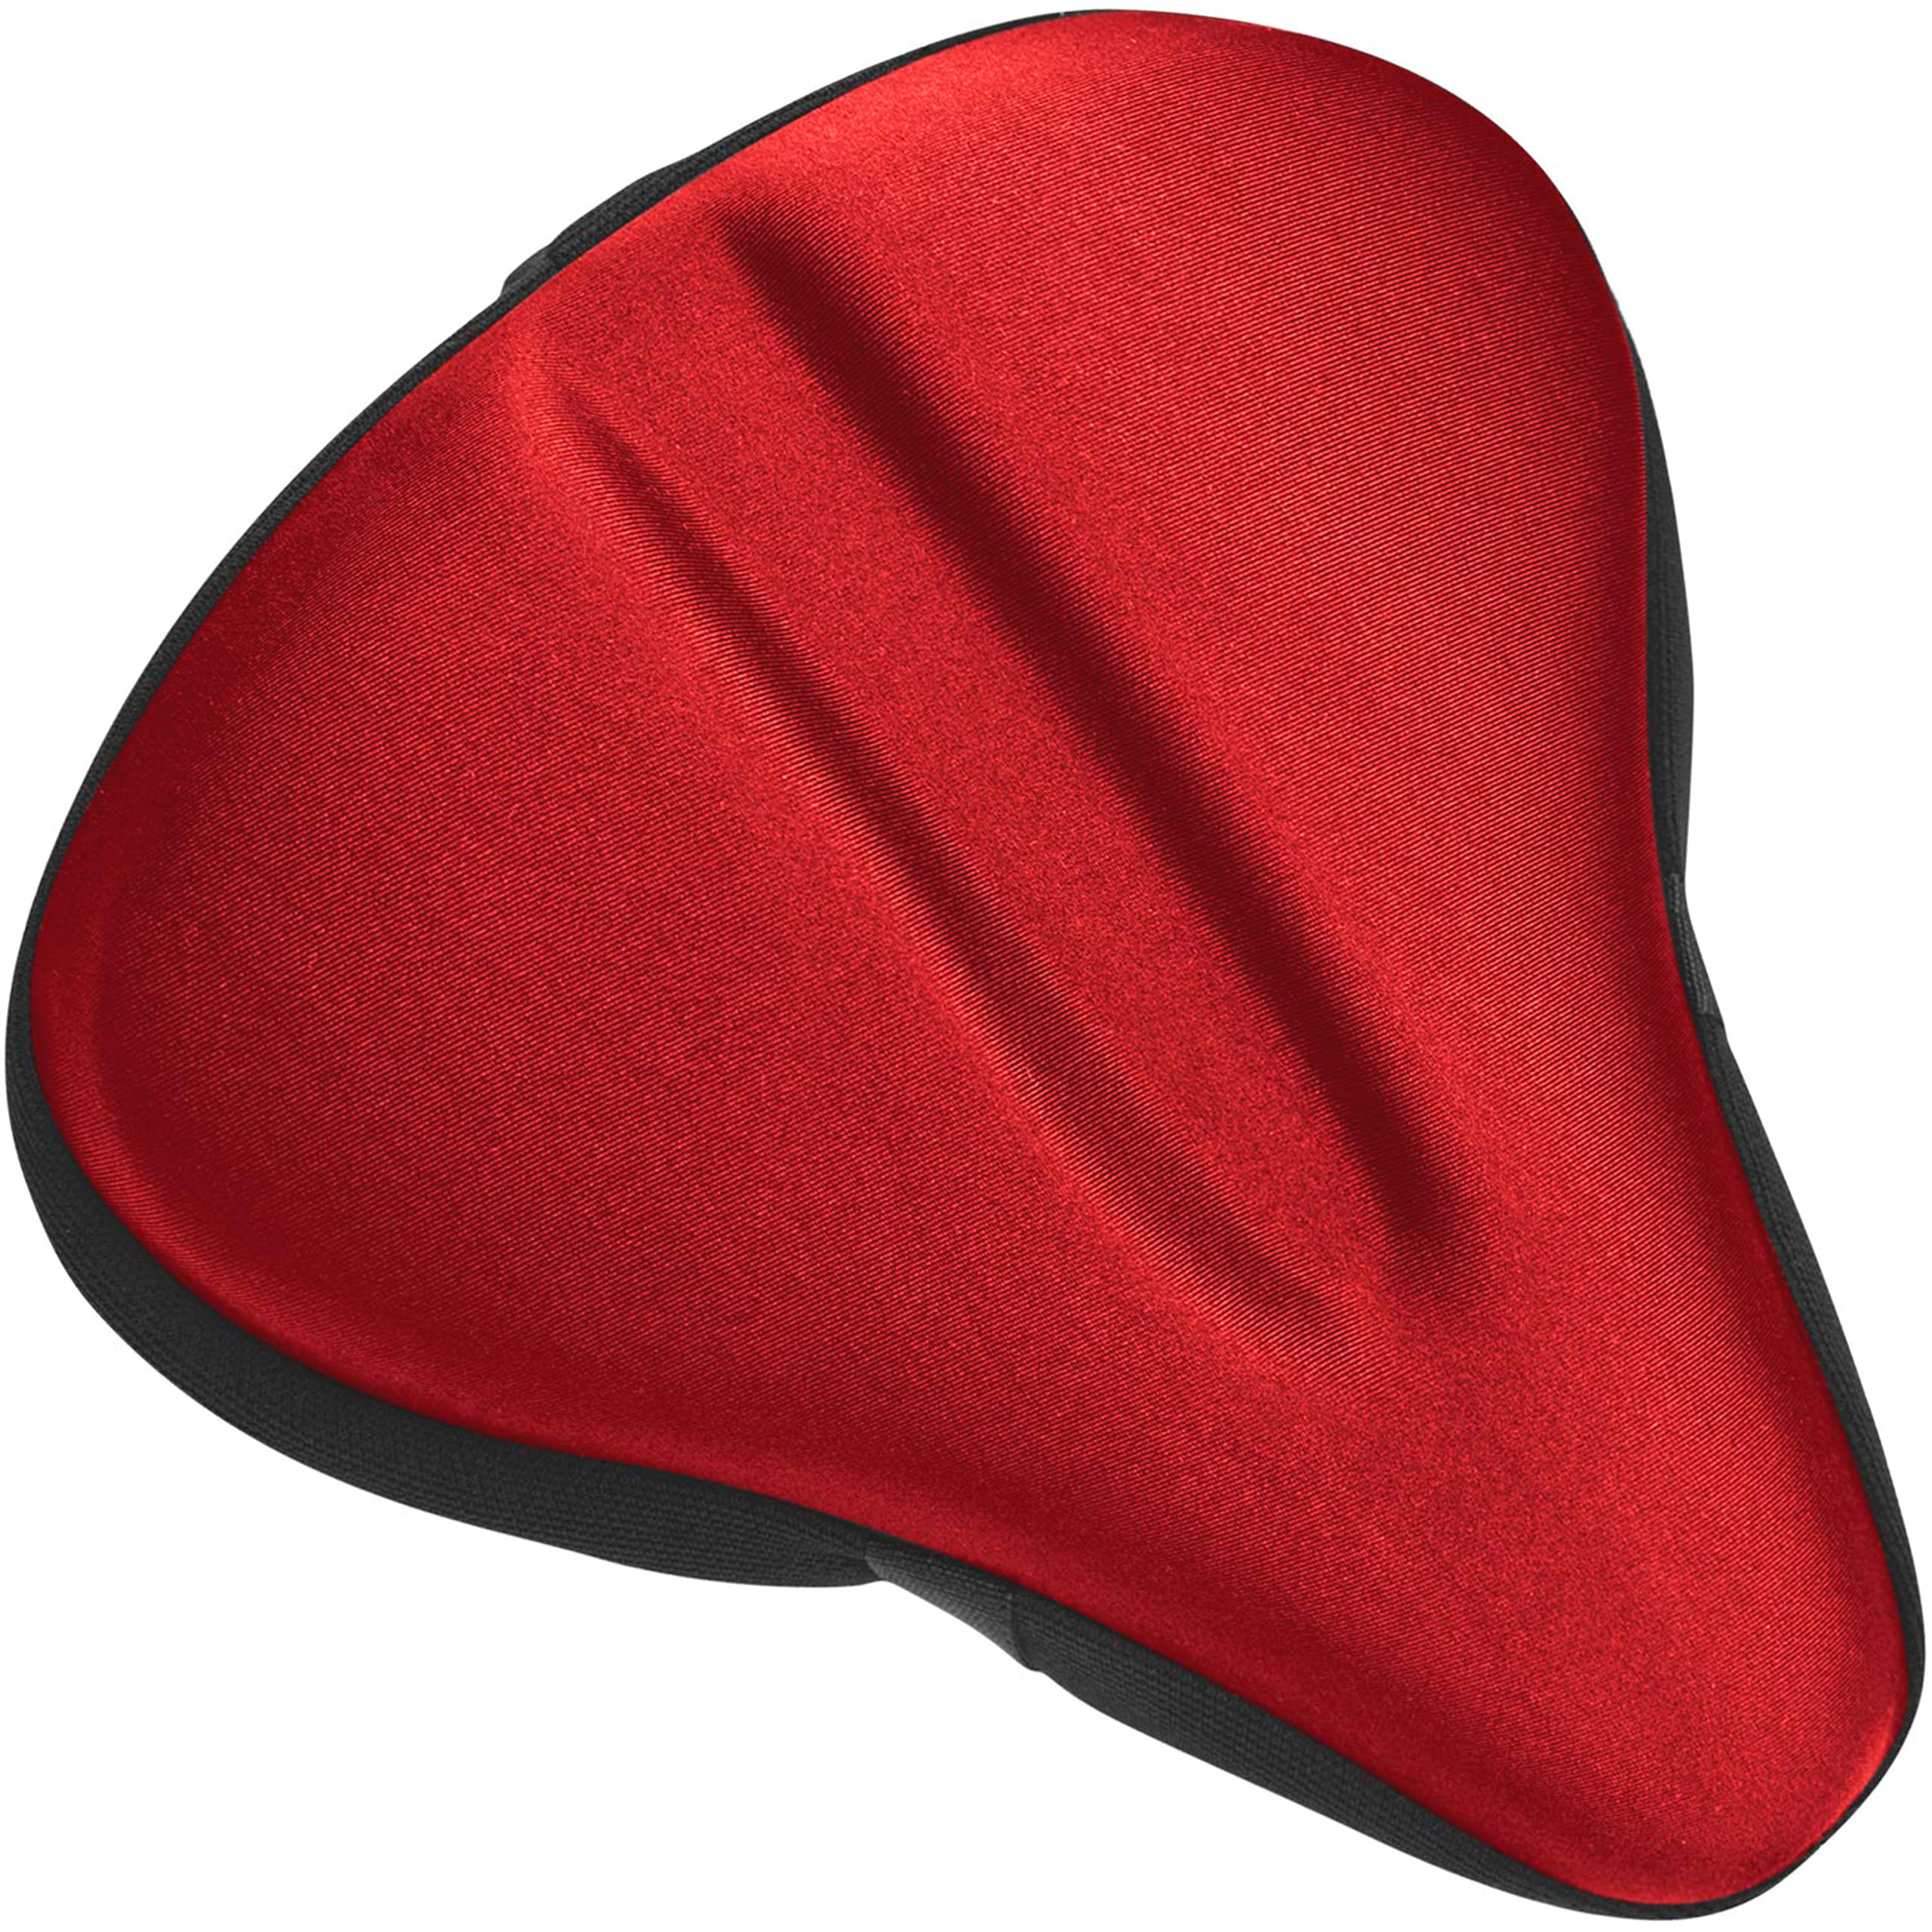 Bikeroo Large Exercise Bike Gel Seat Cushion - Most Comfortable Bicycle Saddle Cover for Women and Men Gel Bike Seat Cover Fits Cruiser and Stationary Bikes, Indoor Cycling, Spinning